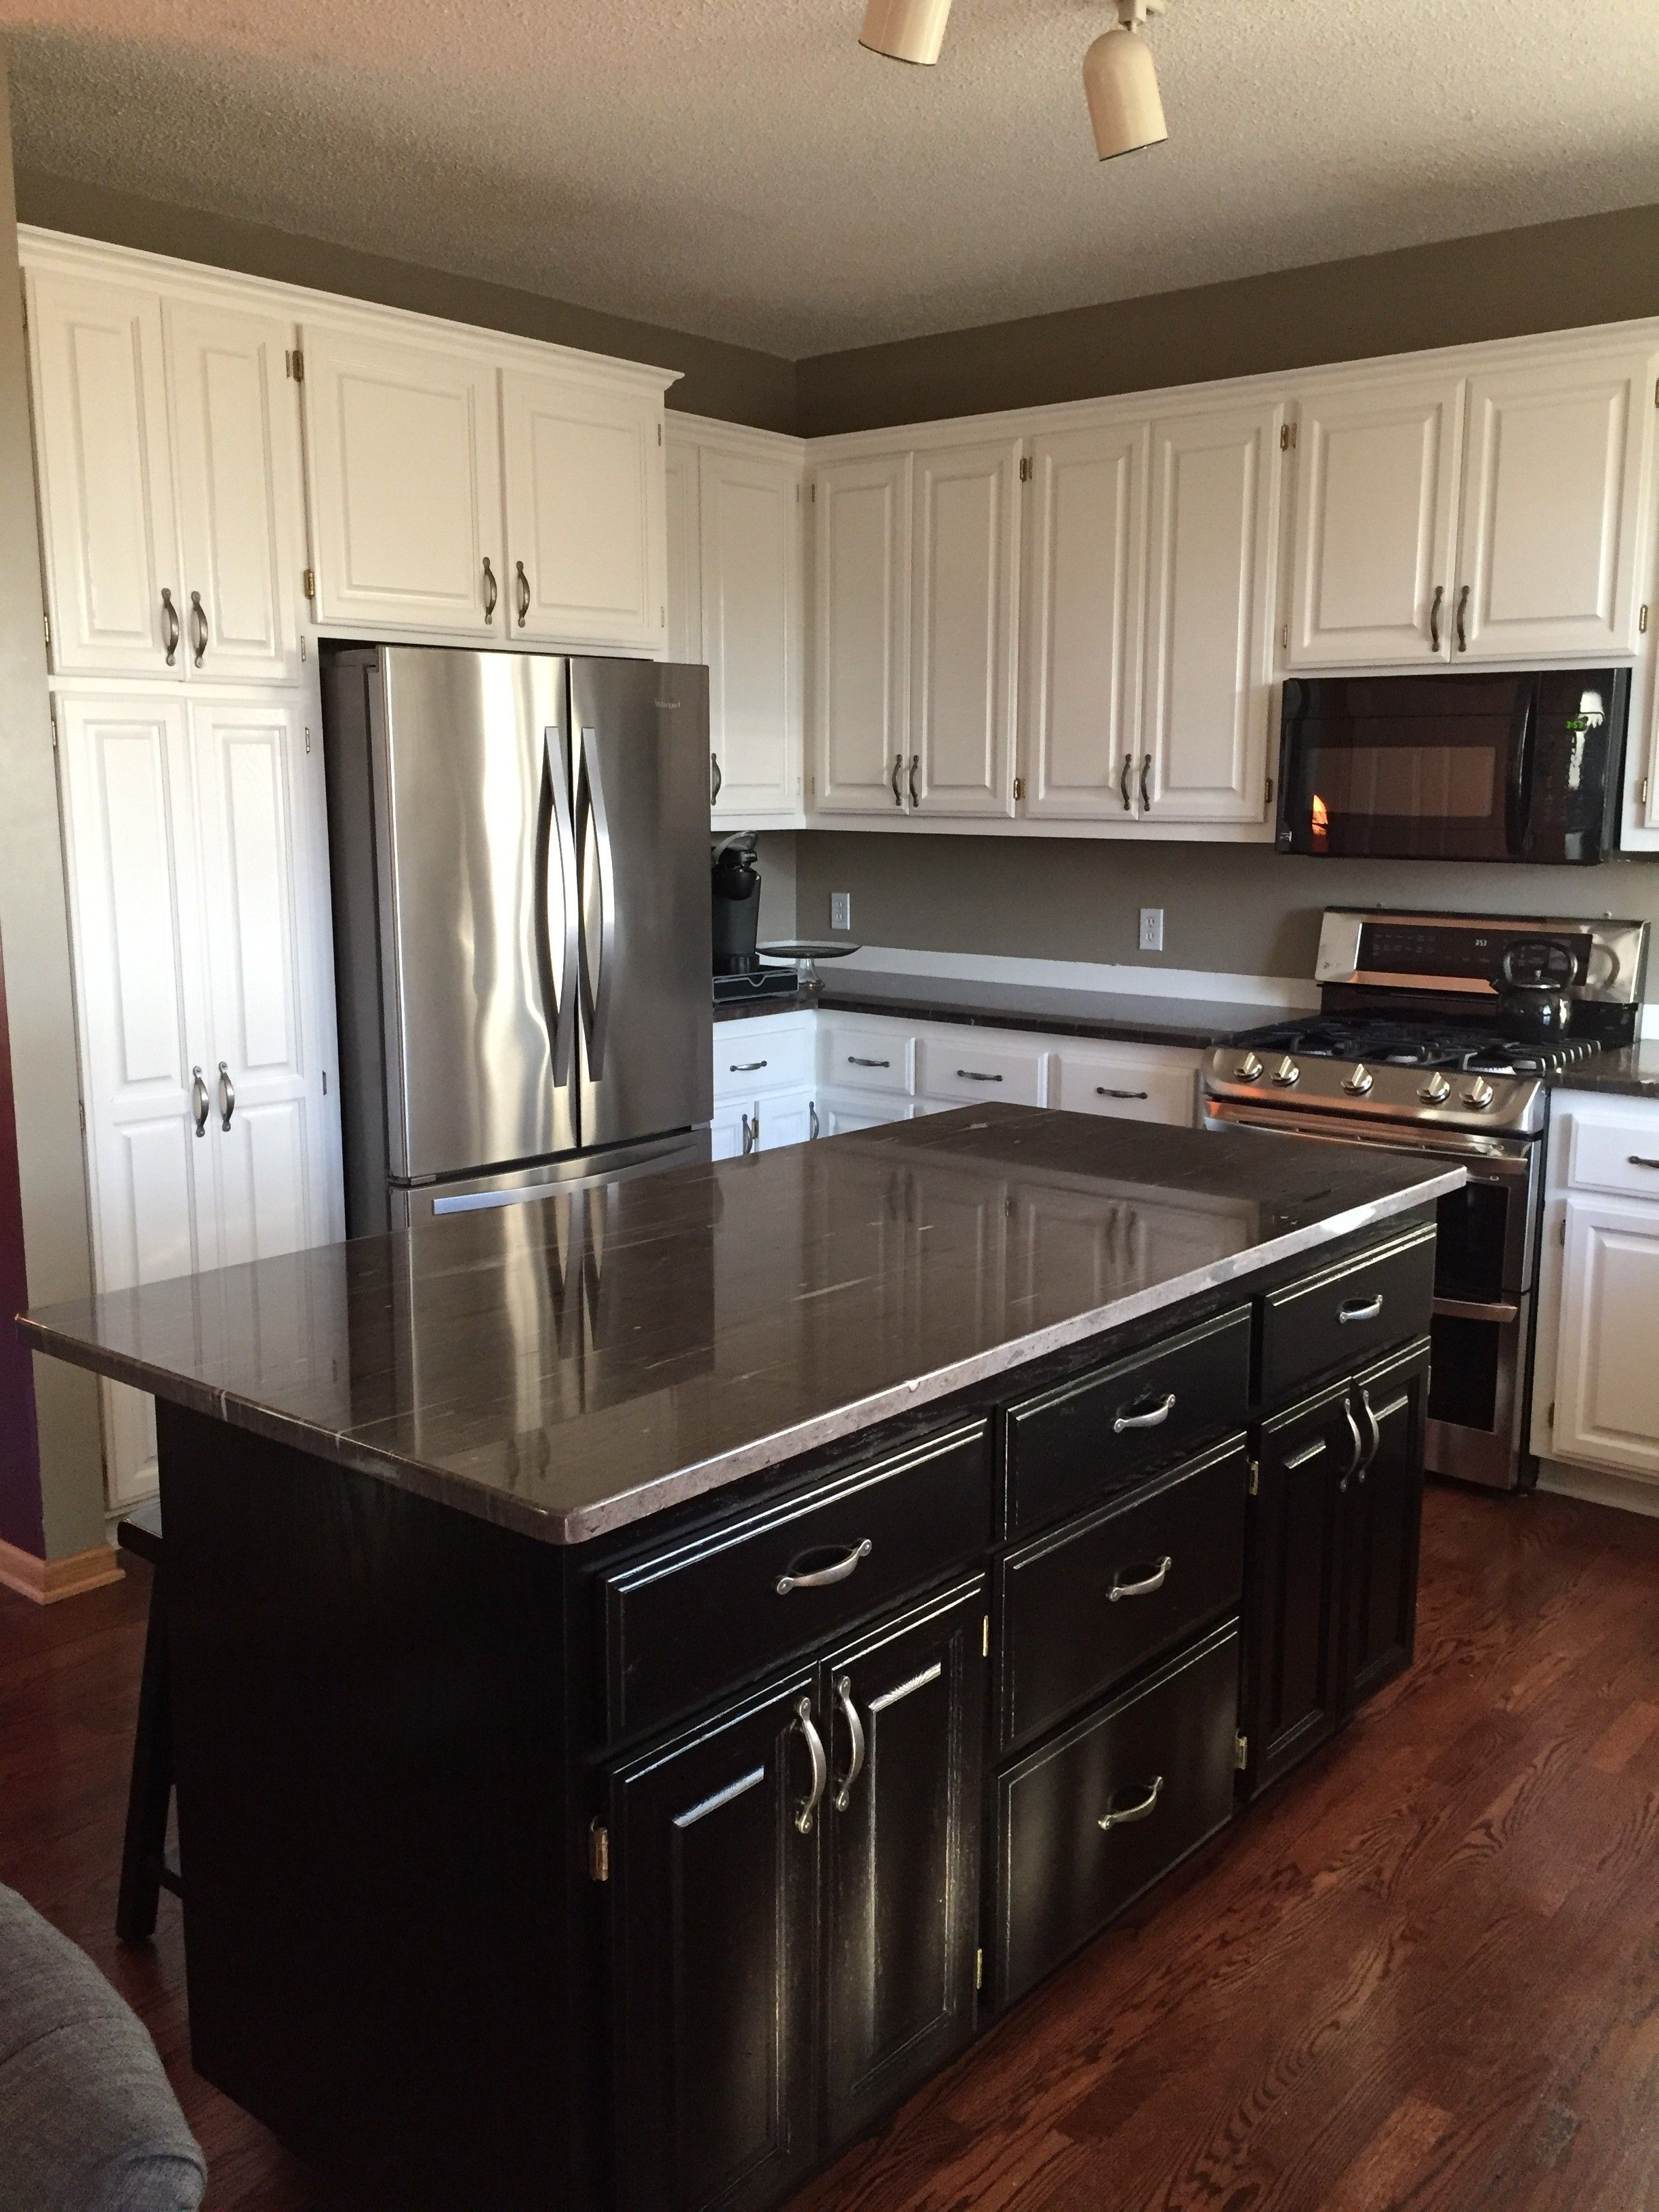 Cabinet Color Change | Cabinet colors, Custom cabinets ...